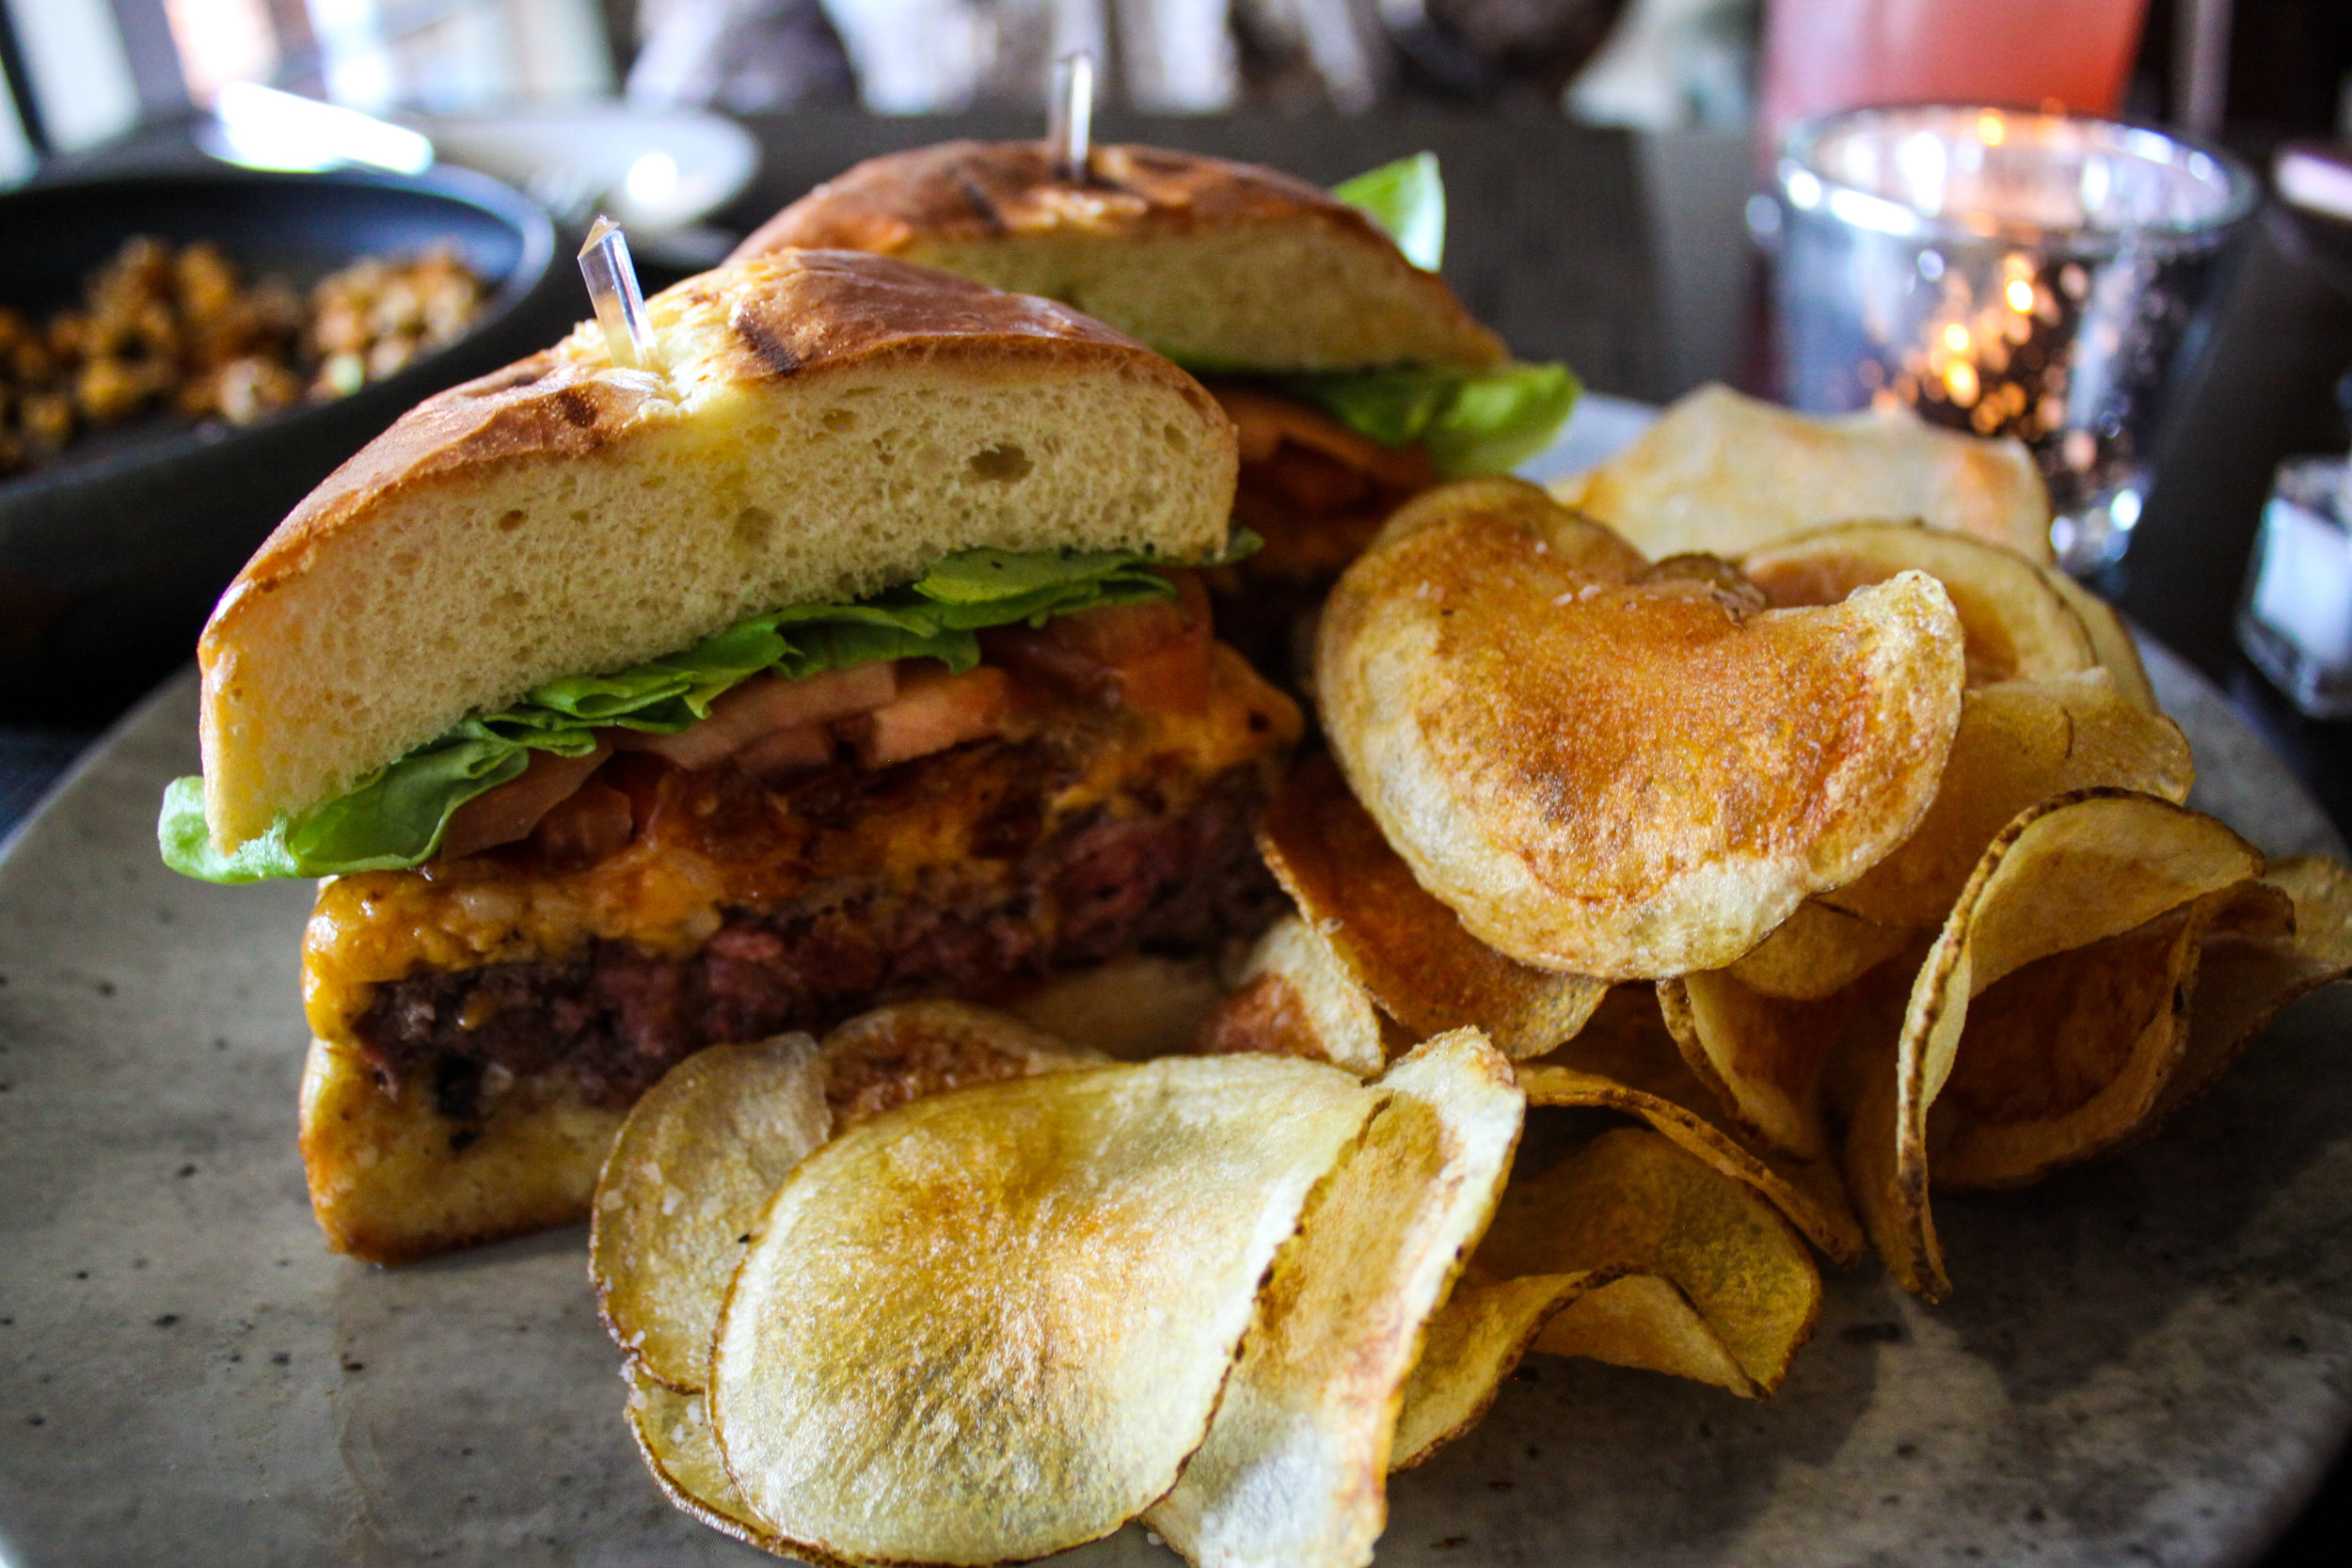 Seaboard Burger + House Bacon + House Pimiento Cheese + Smoked Duke's Mayo + LTOP